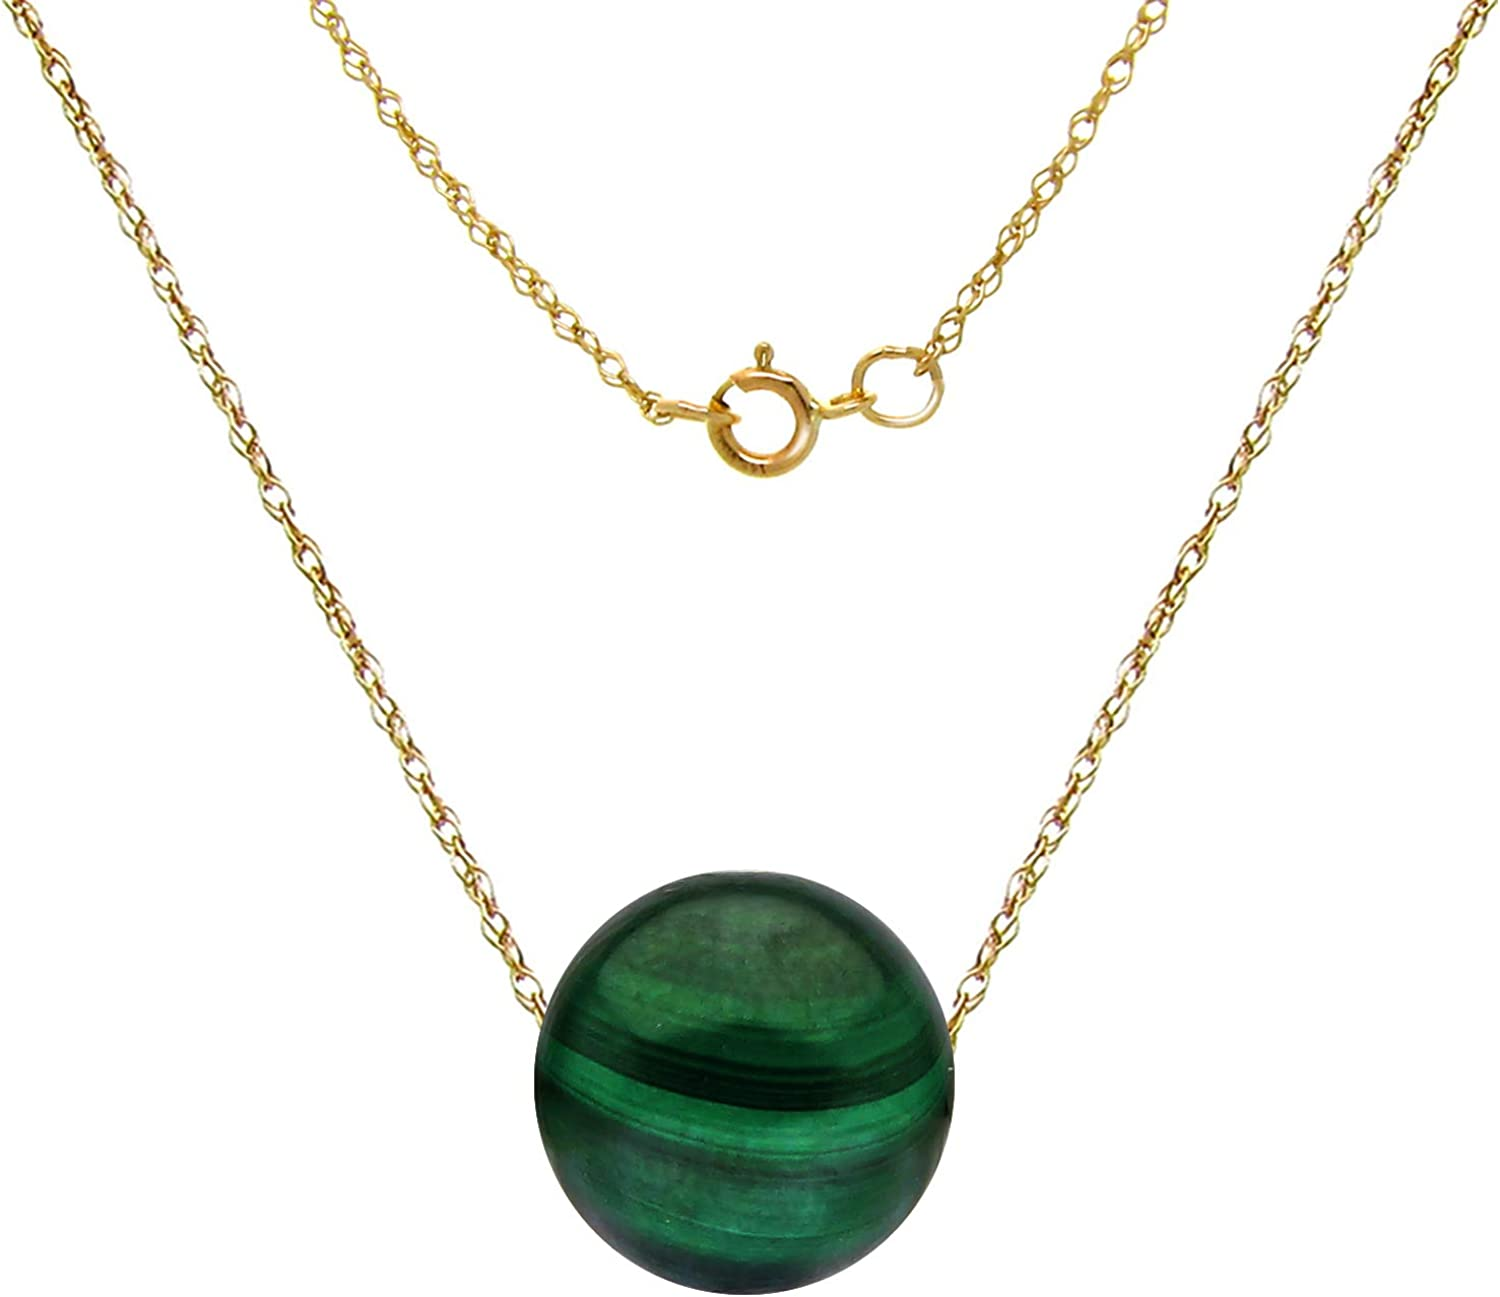 8mm Gemstones Charm Pendant Floating on an 18 Inches Long Rope Chain 14k Gold